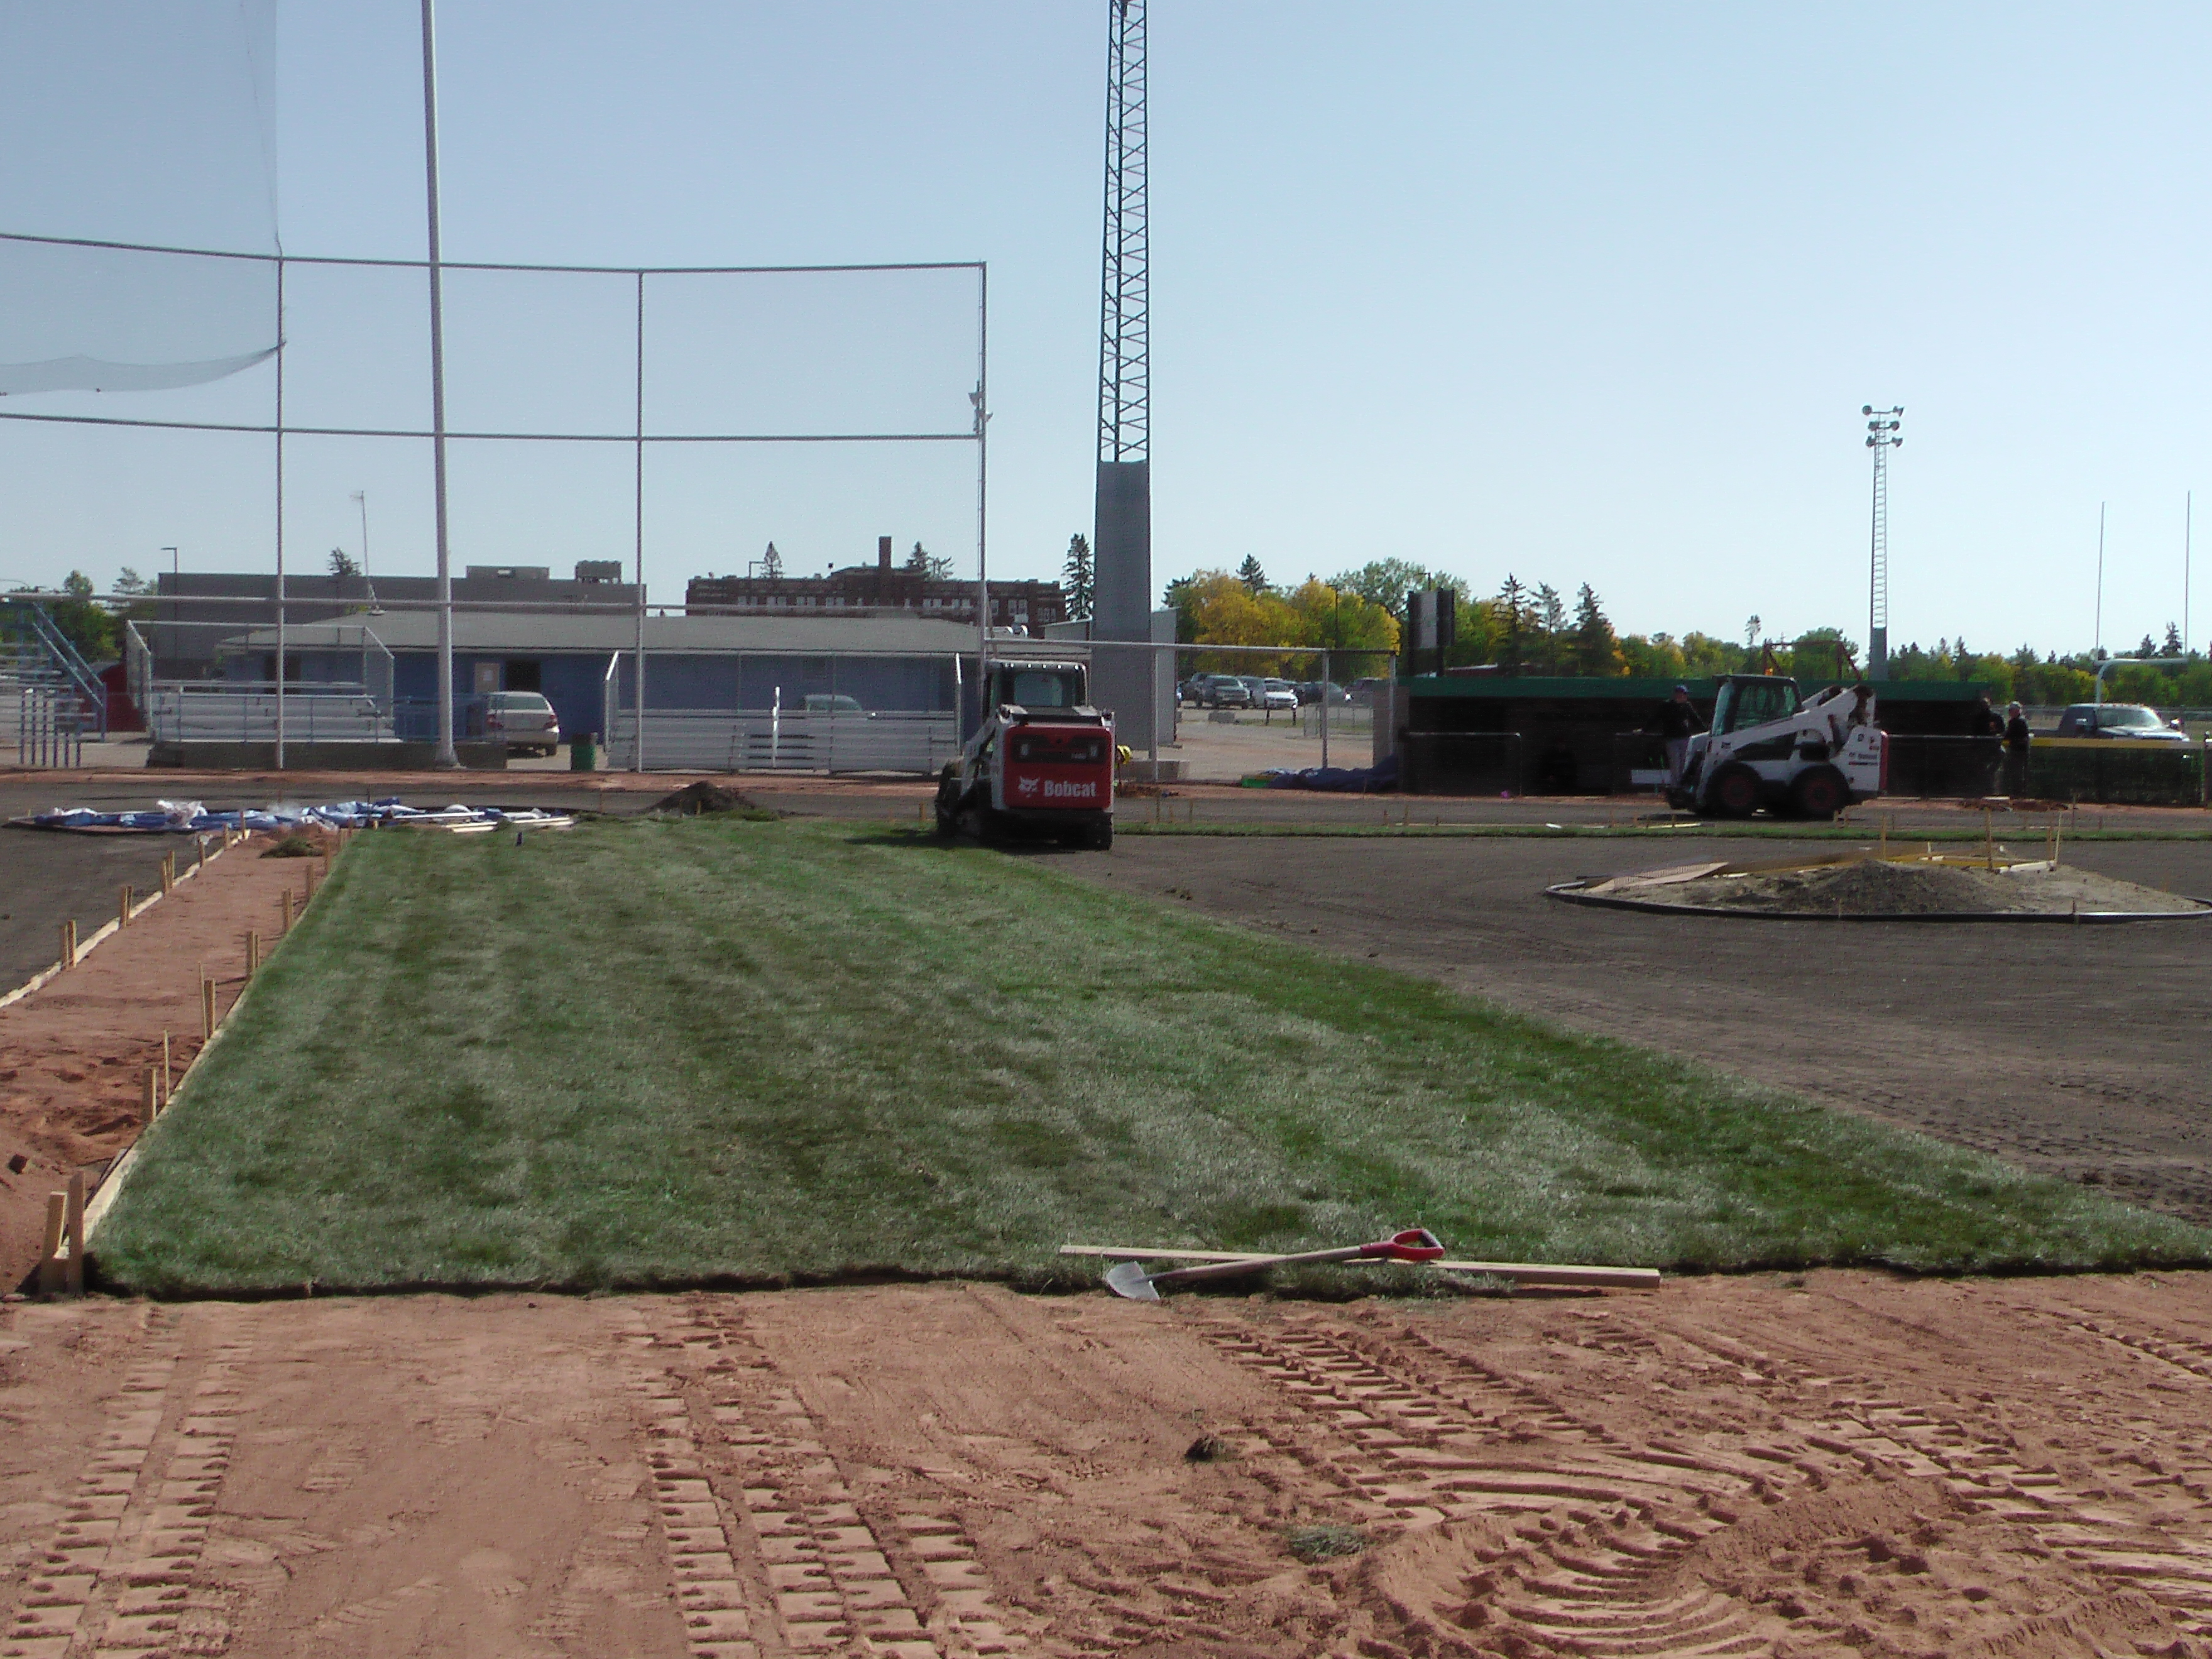 Sept 5 2018 Optimist Park Field Renovations, Placing New Sod/Leveling! - Image 5